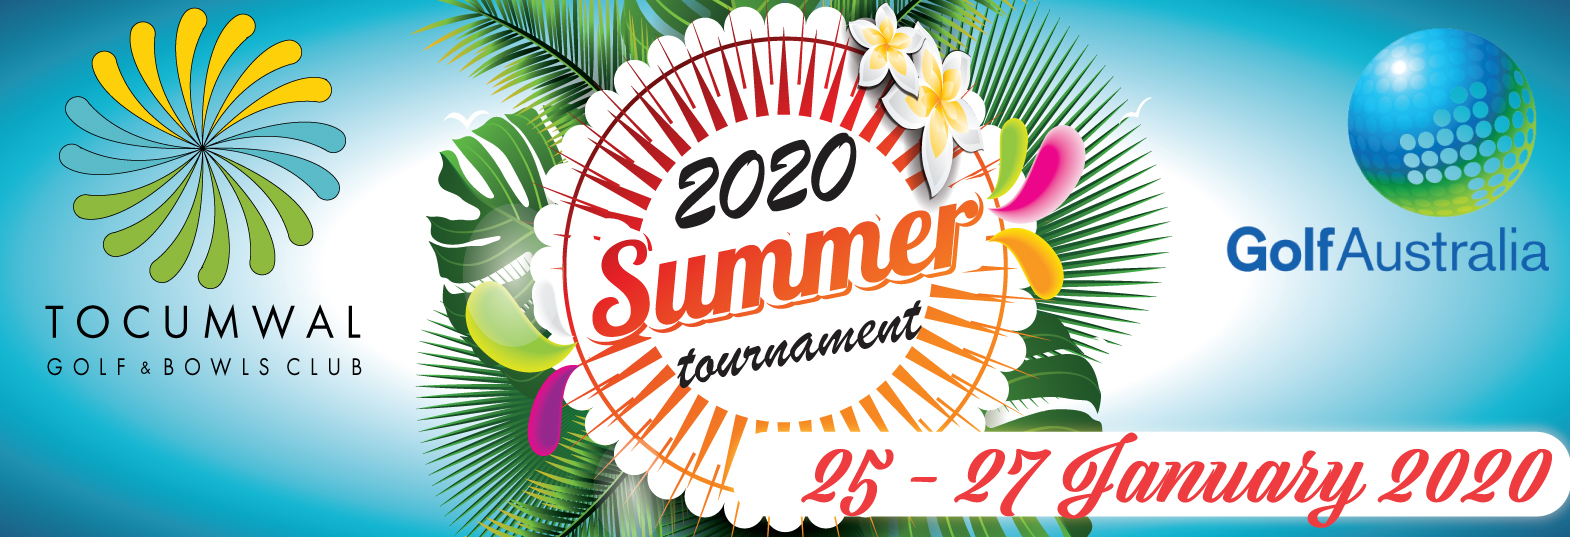 Summer-Tournament-Banner-2020